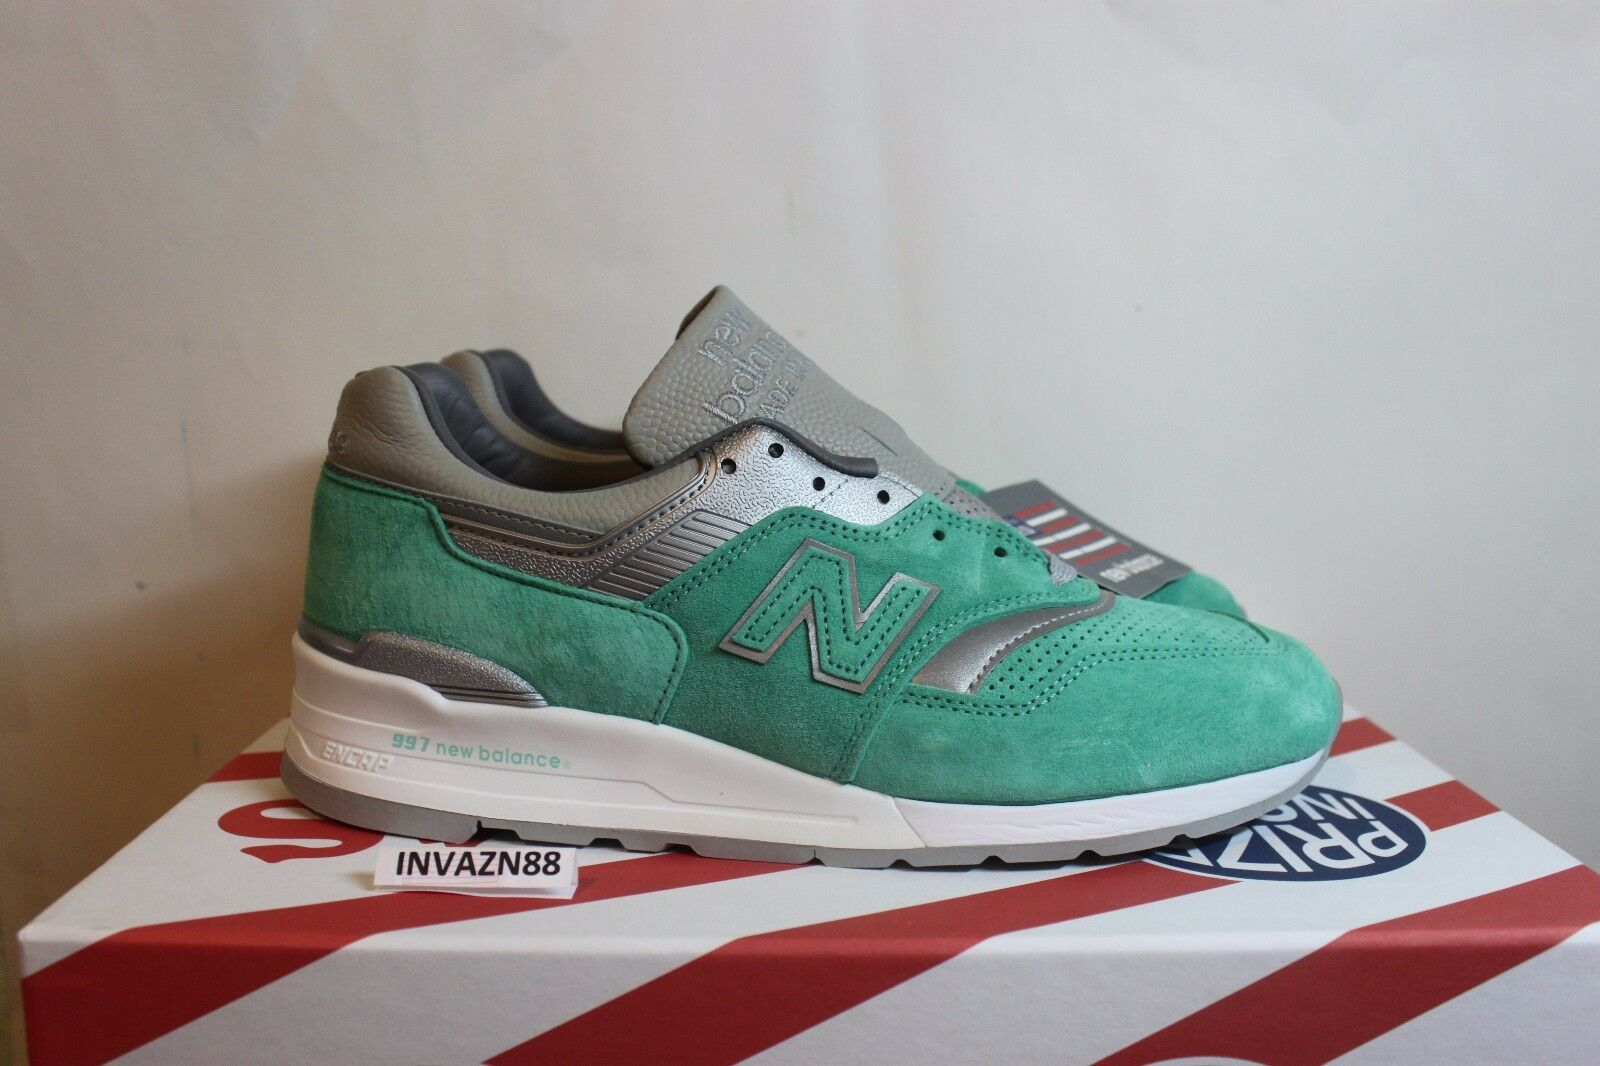 New Balance X Concepts 997 Rivalry Pack NYC New York Mint Made USA Dimensione 8.5